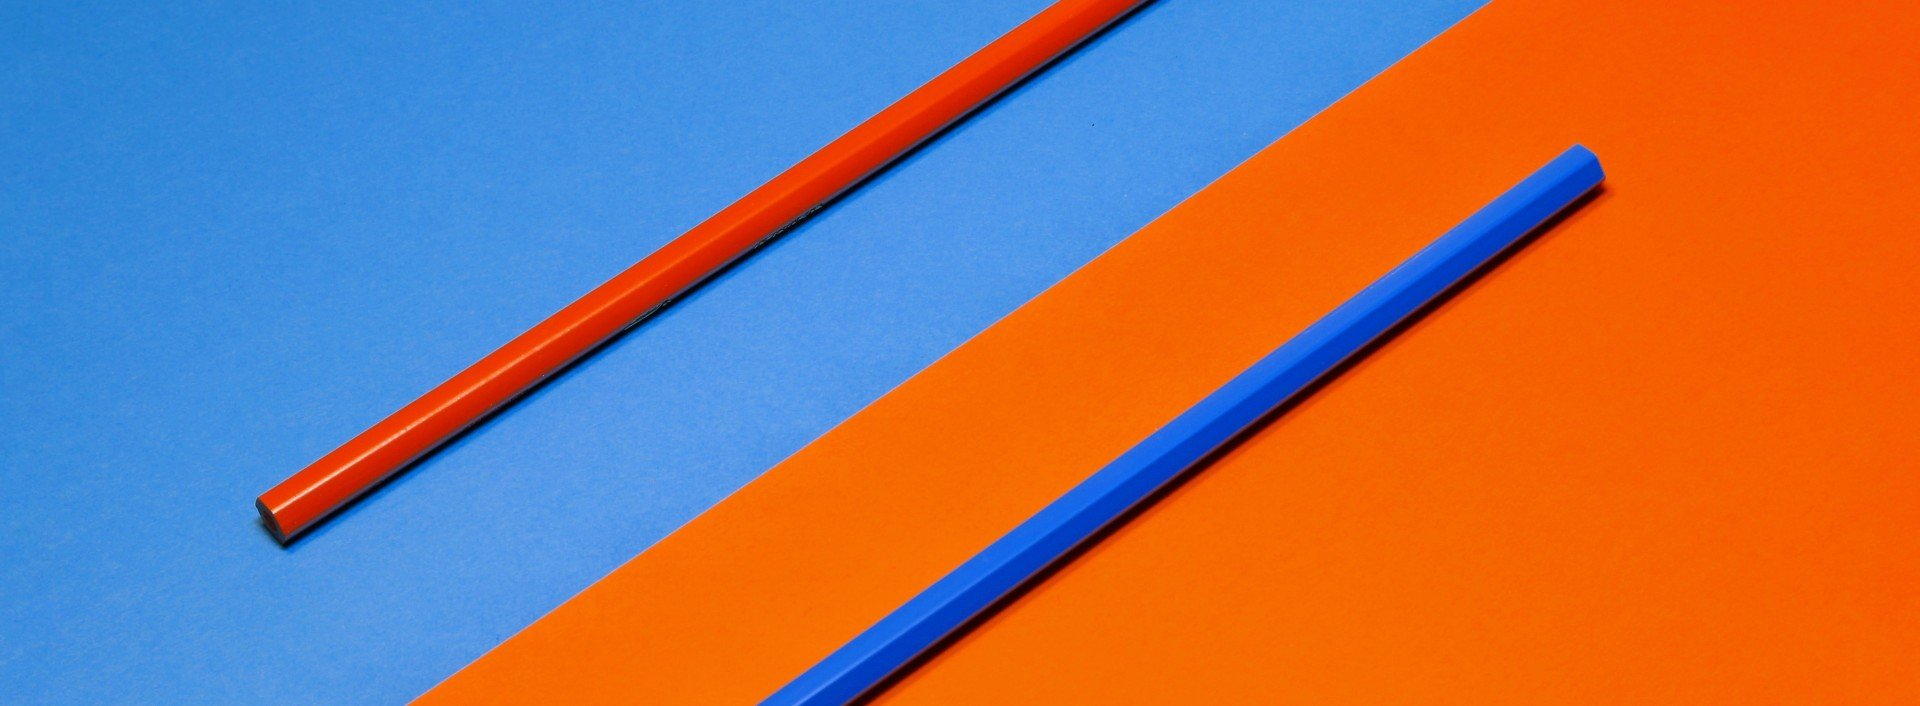 Opposites in English: blue and orange colored pencils are shown on blue and orange color fields.